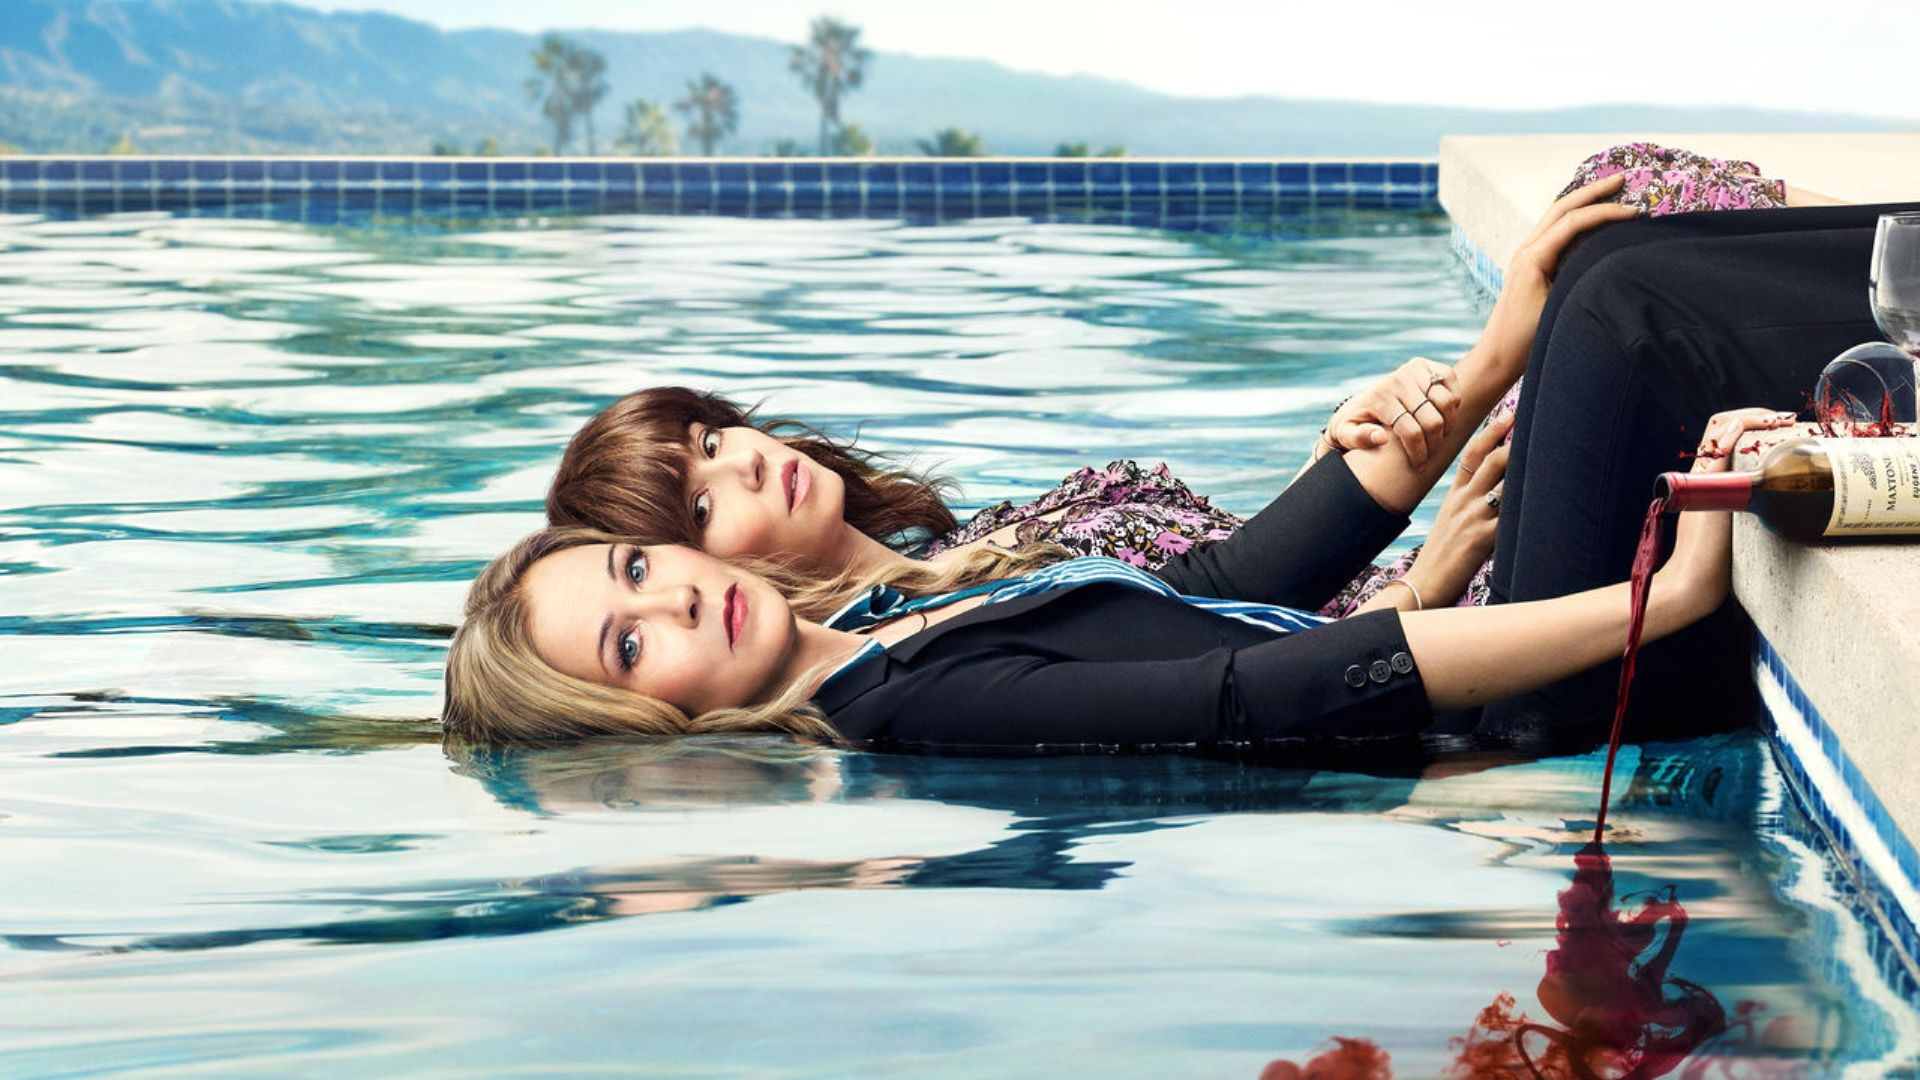 Second season Dead to Me on Netflix in May